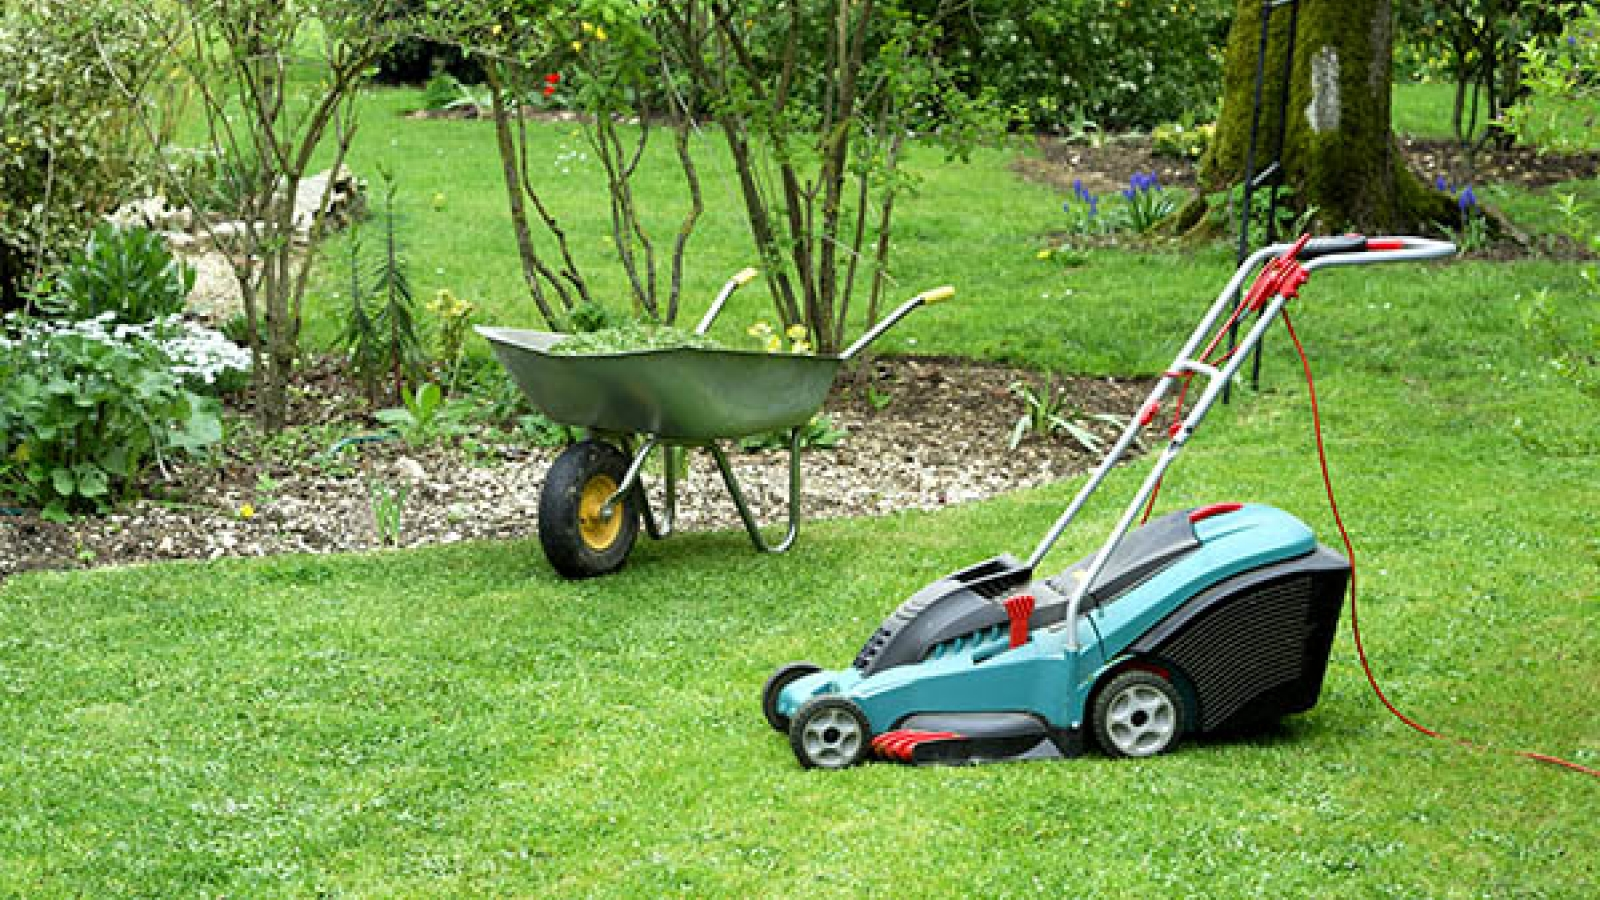 Lawn mower and wheelbarrow sitting on lawn